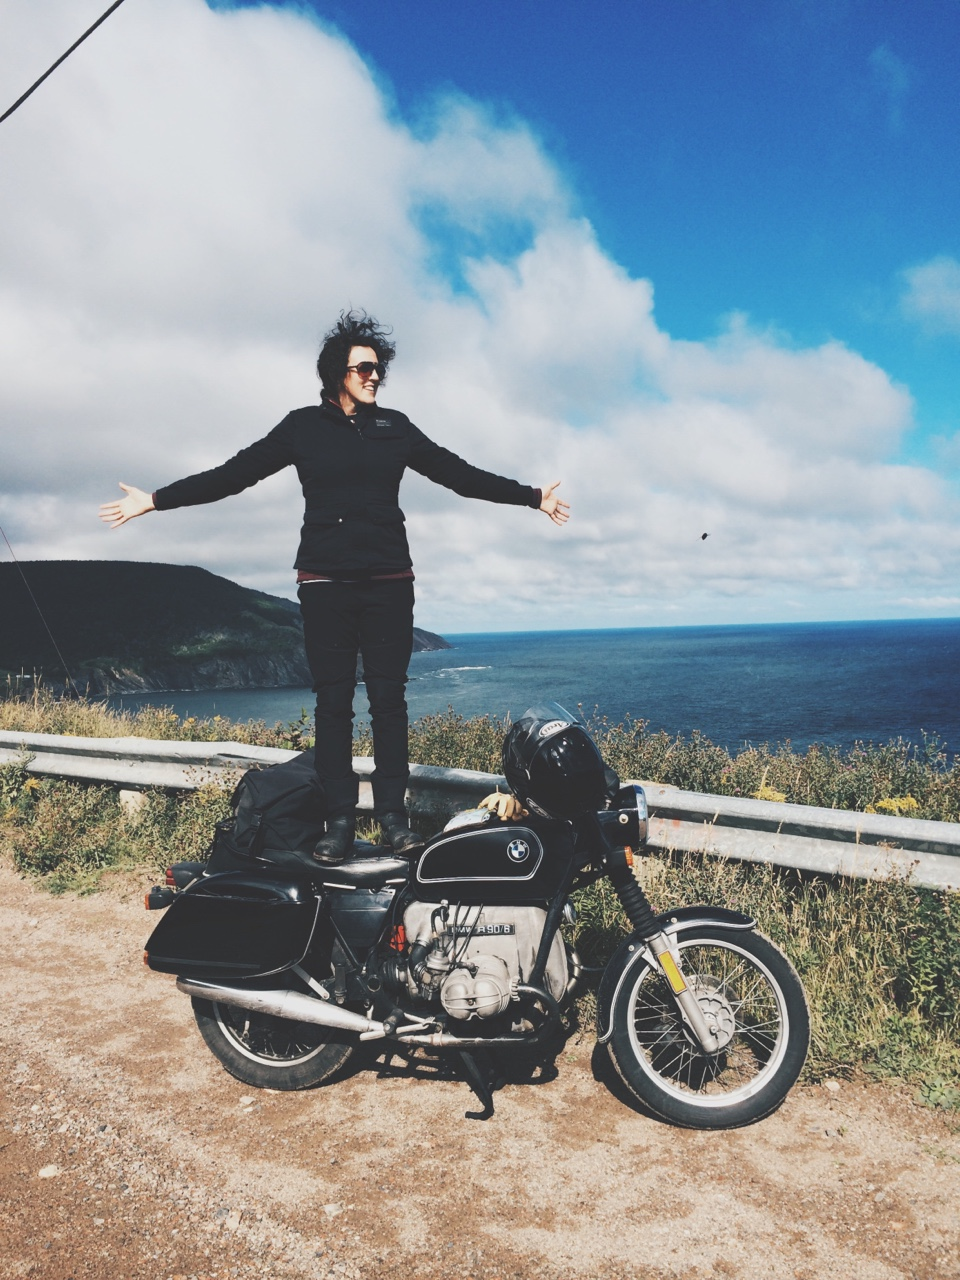 There's been a lot of buzz surrounding the women who ride lately, and while they are all badass in their own right, none of them are quite as badass as Nashville's own Yve Assad.    In August of 2014 Yve embarked on a solo ride from Nashville to Nova Scotia, covering 5136 miles on a 1976 BMW R90/6.    The trip took 29 days, crossed 14 States & 3 Canadian Provinces (Quebec, New Brunswick, Nova Scotia), and included 5 ferry crossings, with the ultimate goal of reaching the northernmost point on Cape Breton, known as Meat Cove.     90% of Yve's time was spent on back roads, avoiding highways & camping wherever she could find shelter. Except for a broken speedometer & a couple of sore shoulders, both Yve & the bike made it home unscathed but forever changed.     As the only female member of the Blackbird Assembly, Yve stands strong among the boys not only as a rider, but an incredible artist as well. Following this feature, we will be showcasing some of Yve's photography in our first Atlas Takeover.